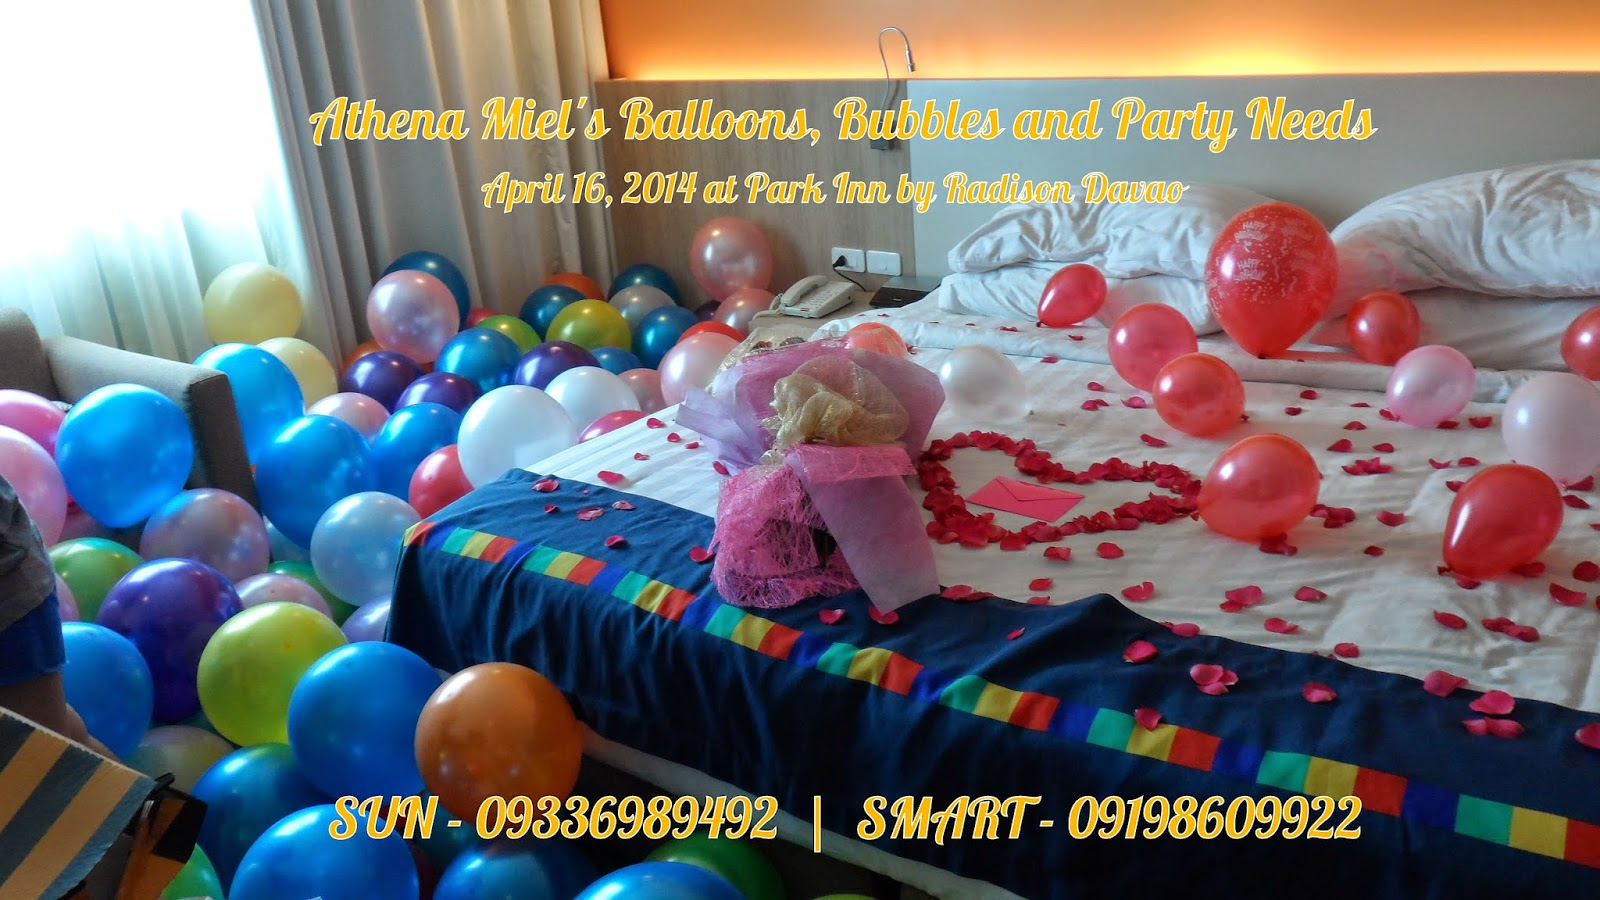 Want To Surprise A Newly Wed Your Fiance Friend Or Someone Who Is Very Special You Athena Miel S Balloons Bubbles And Party Needs Will Be